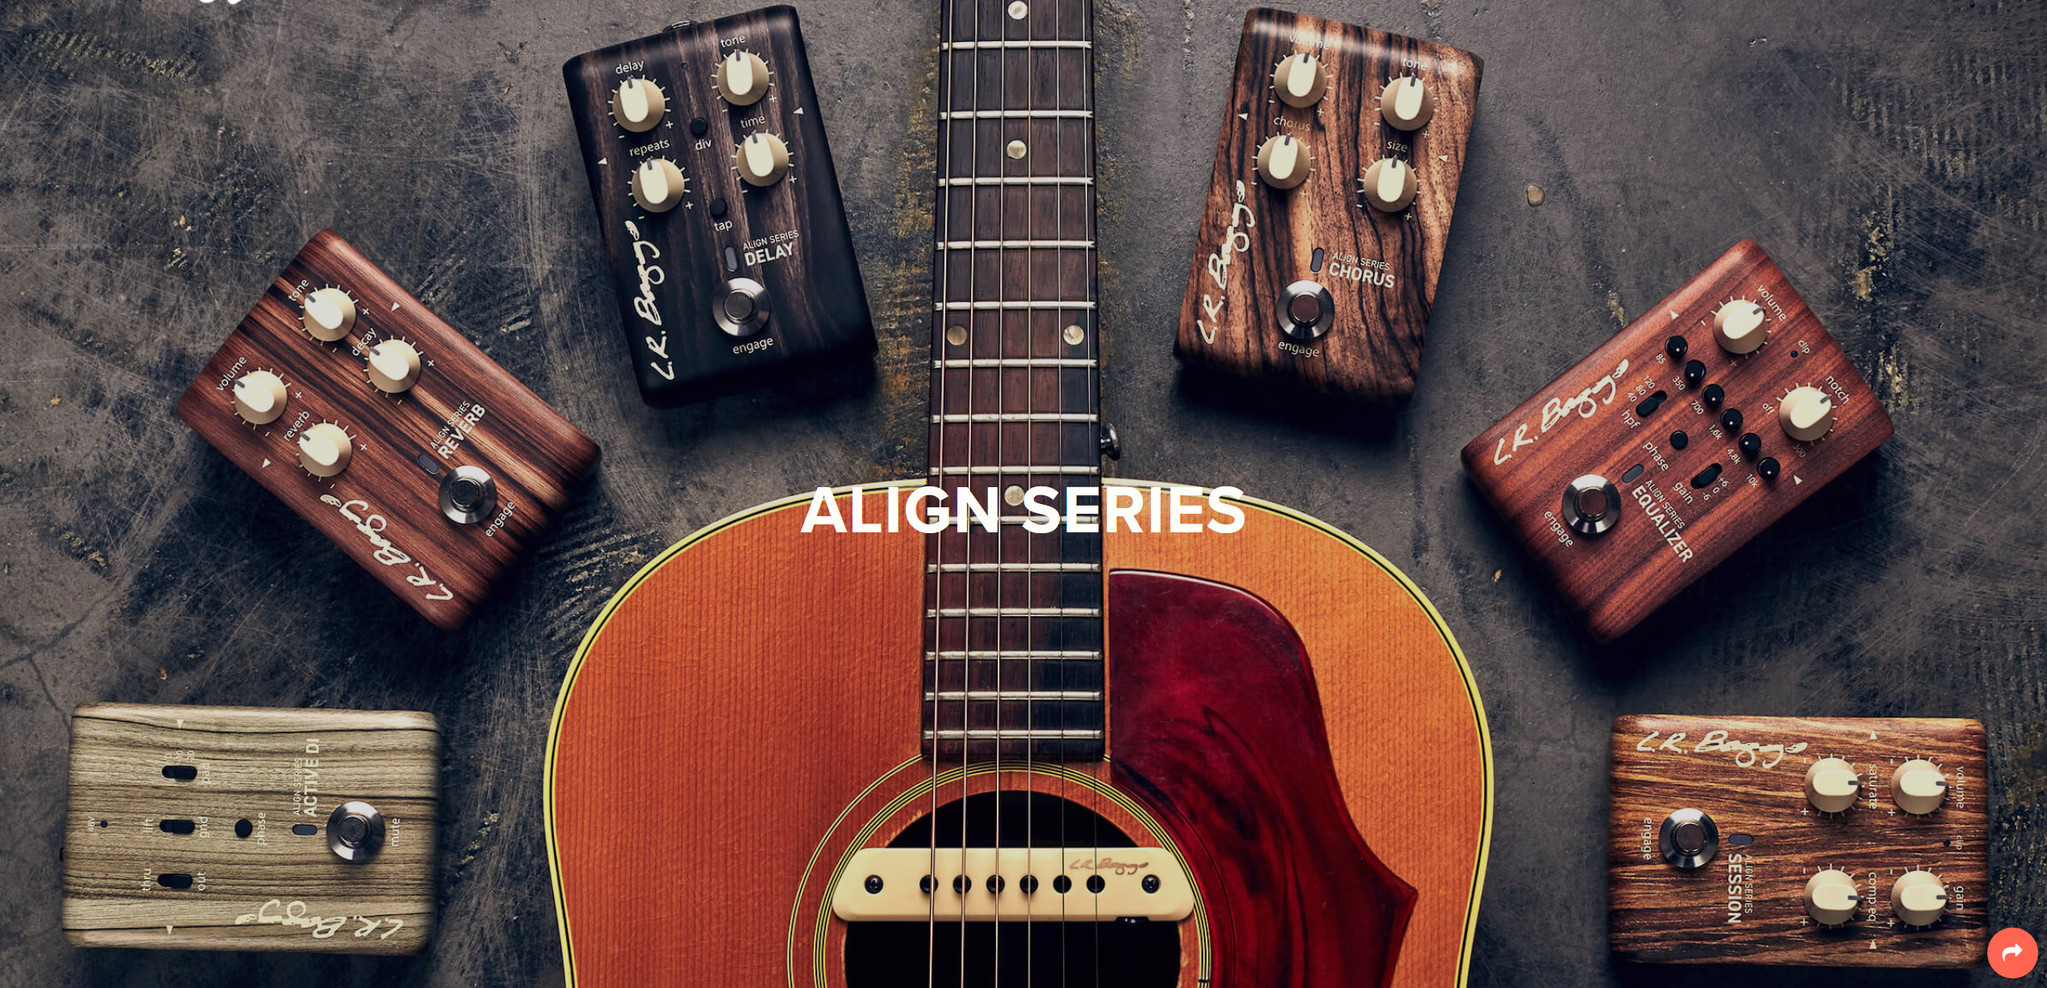 The LR Baggs Align Series   Acoustic Guitar Pedals